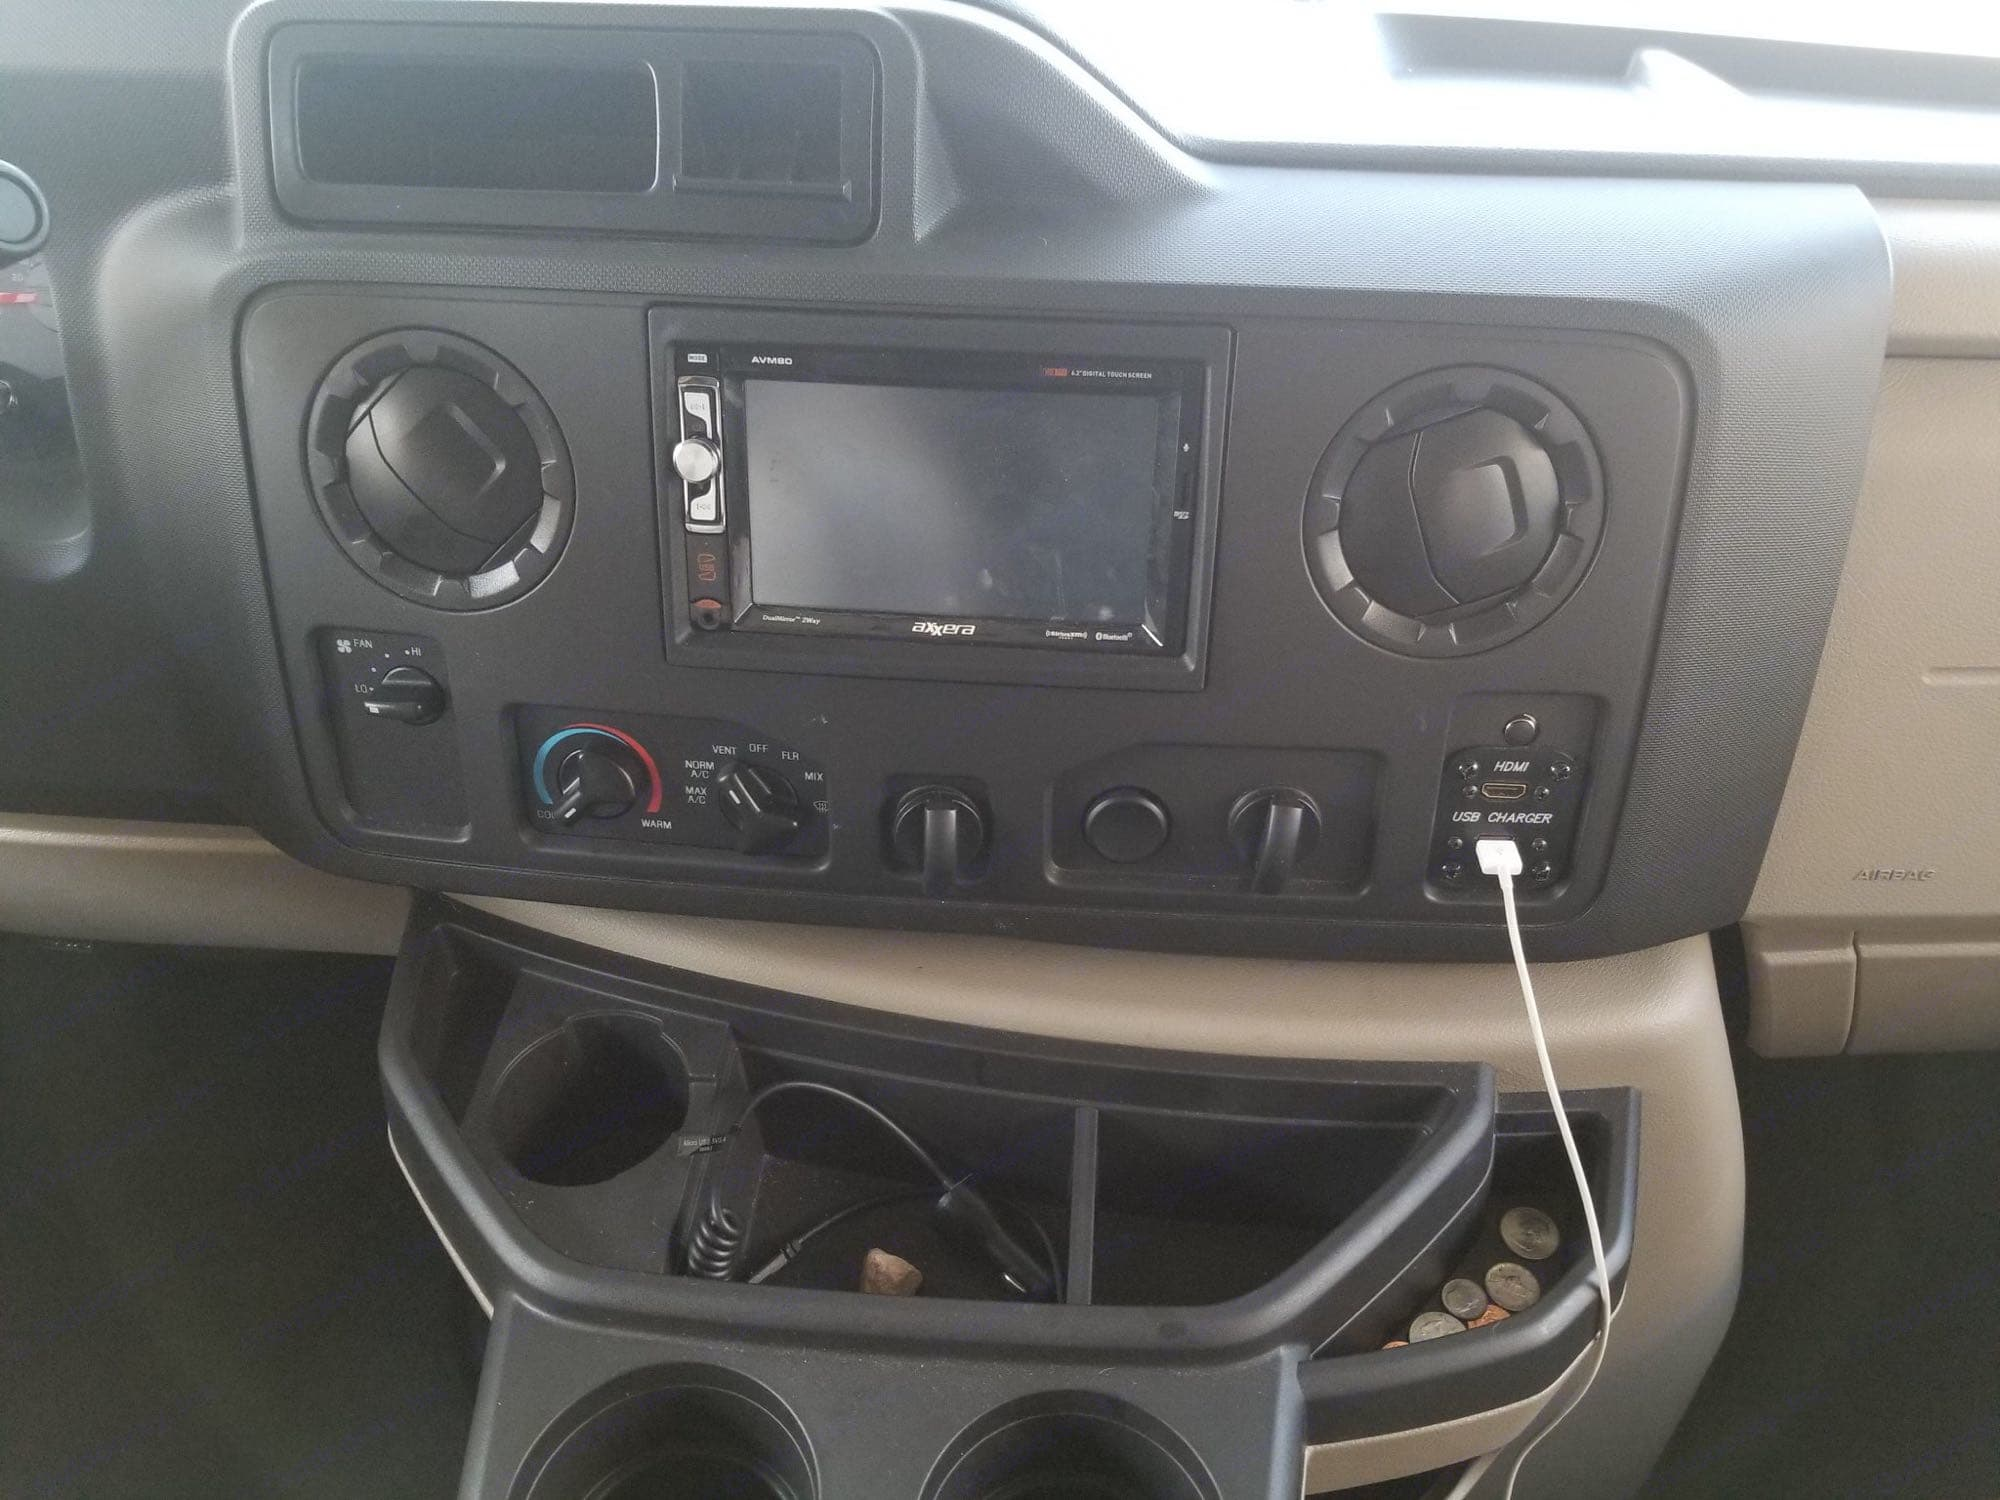 back up camera. radio with bt. chargers. now includes power inverter for  additional charging and power use capabilities while traveling. Thor Motor Coach Four Winds 2019